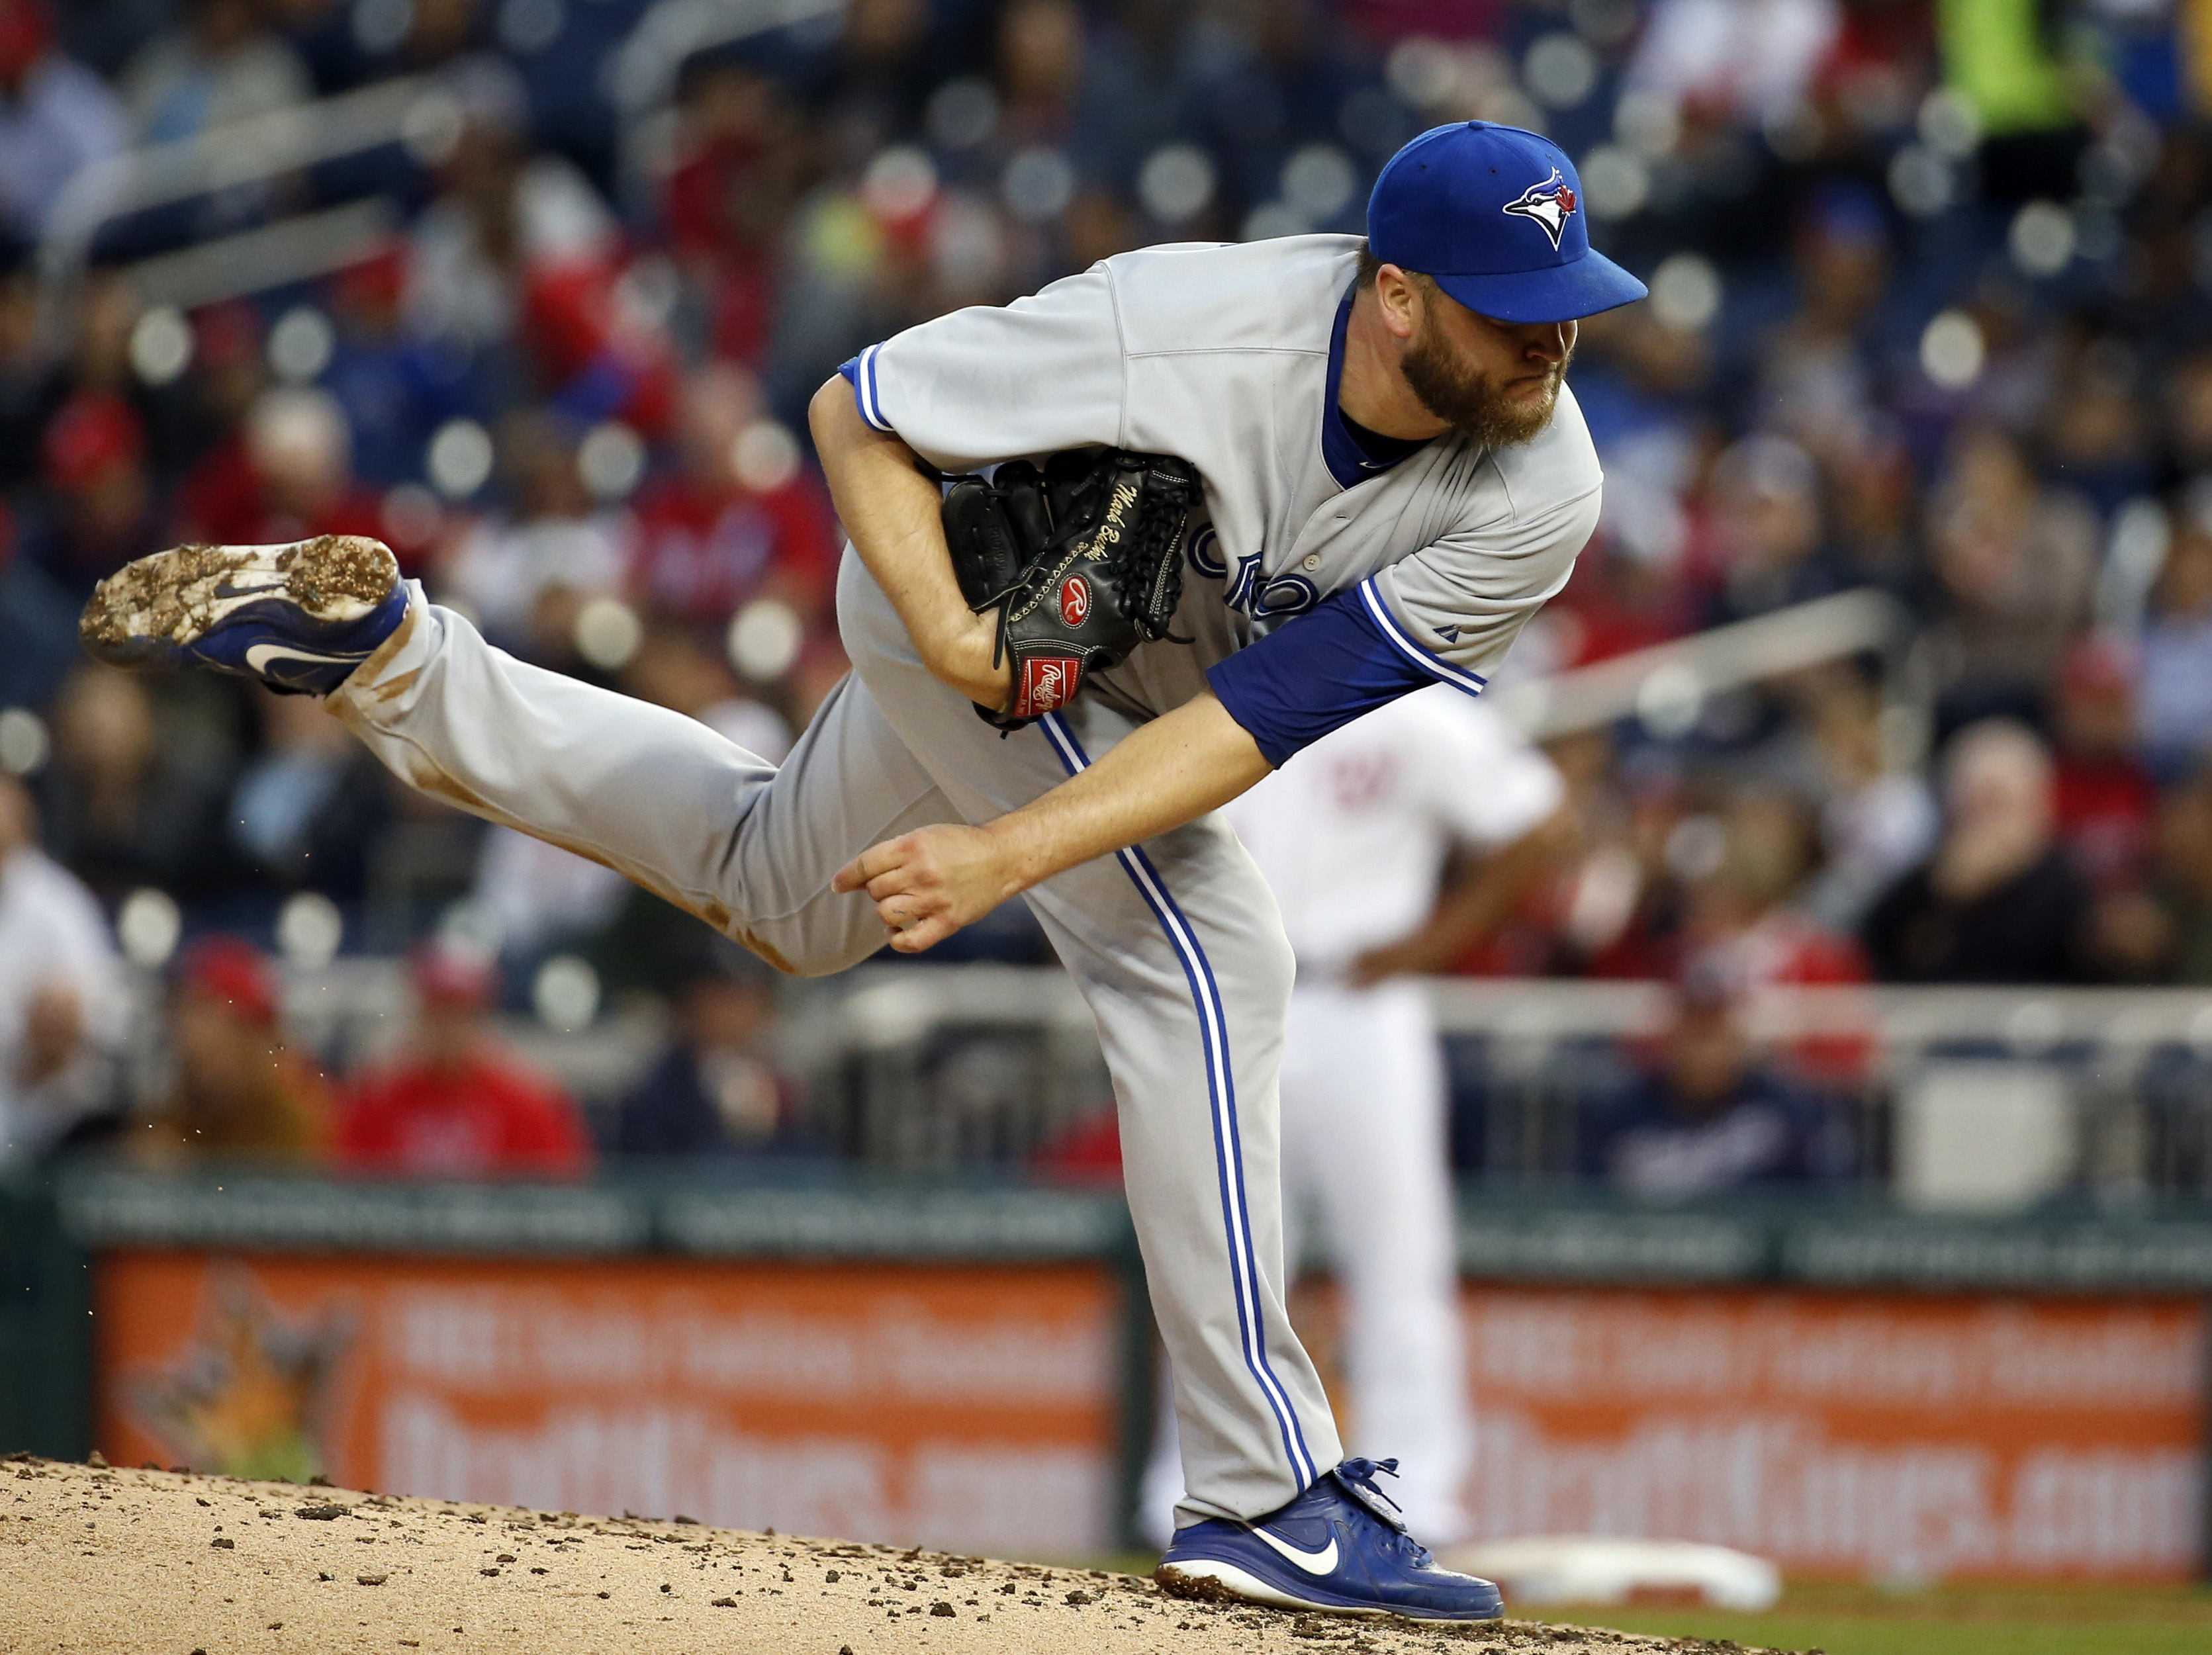 Toronto Blue Jays starting pitcher Mark Buehrle follows through on a pitch during the third inning of a baseball game against the Washington Nationals at Nationals Park, Wednesday, June 3, 2015, in Washington. (AP Photo/Alex Brandon)